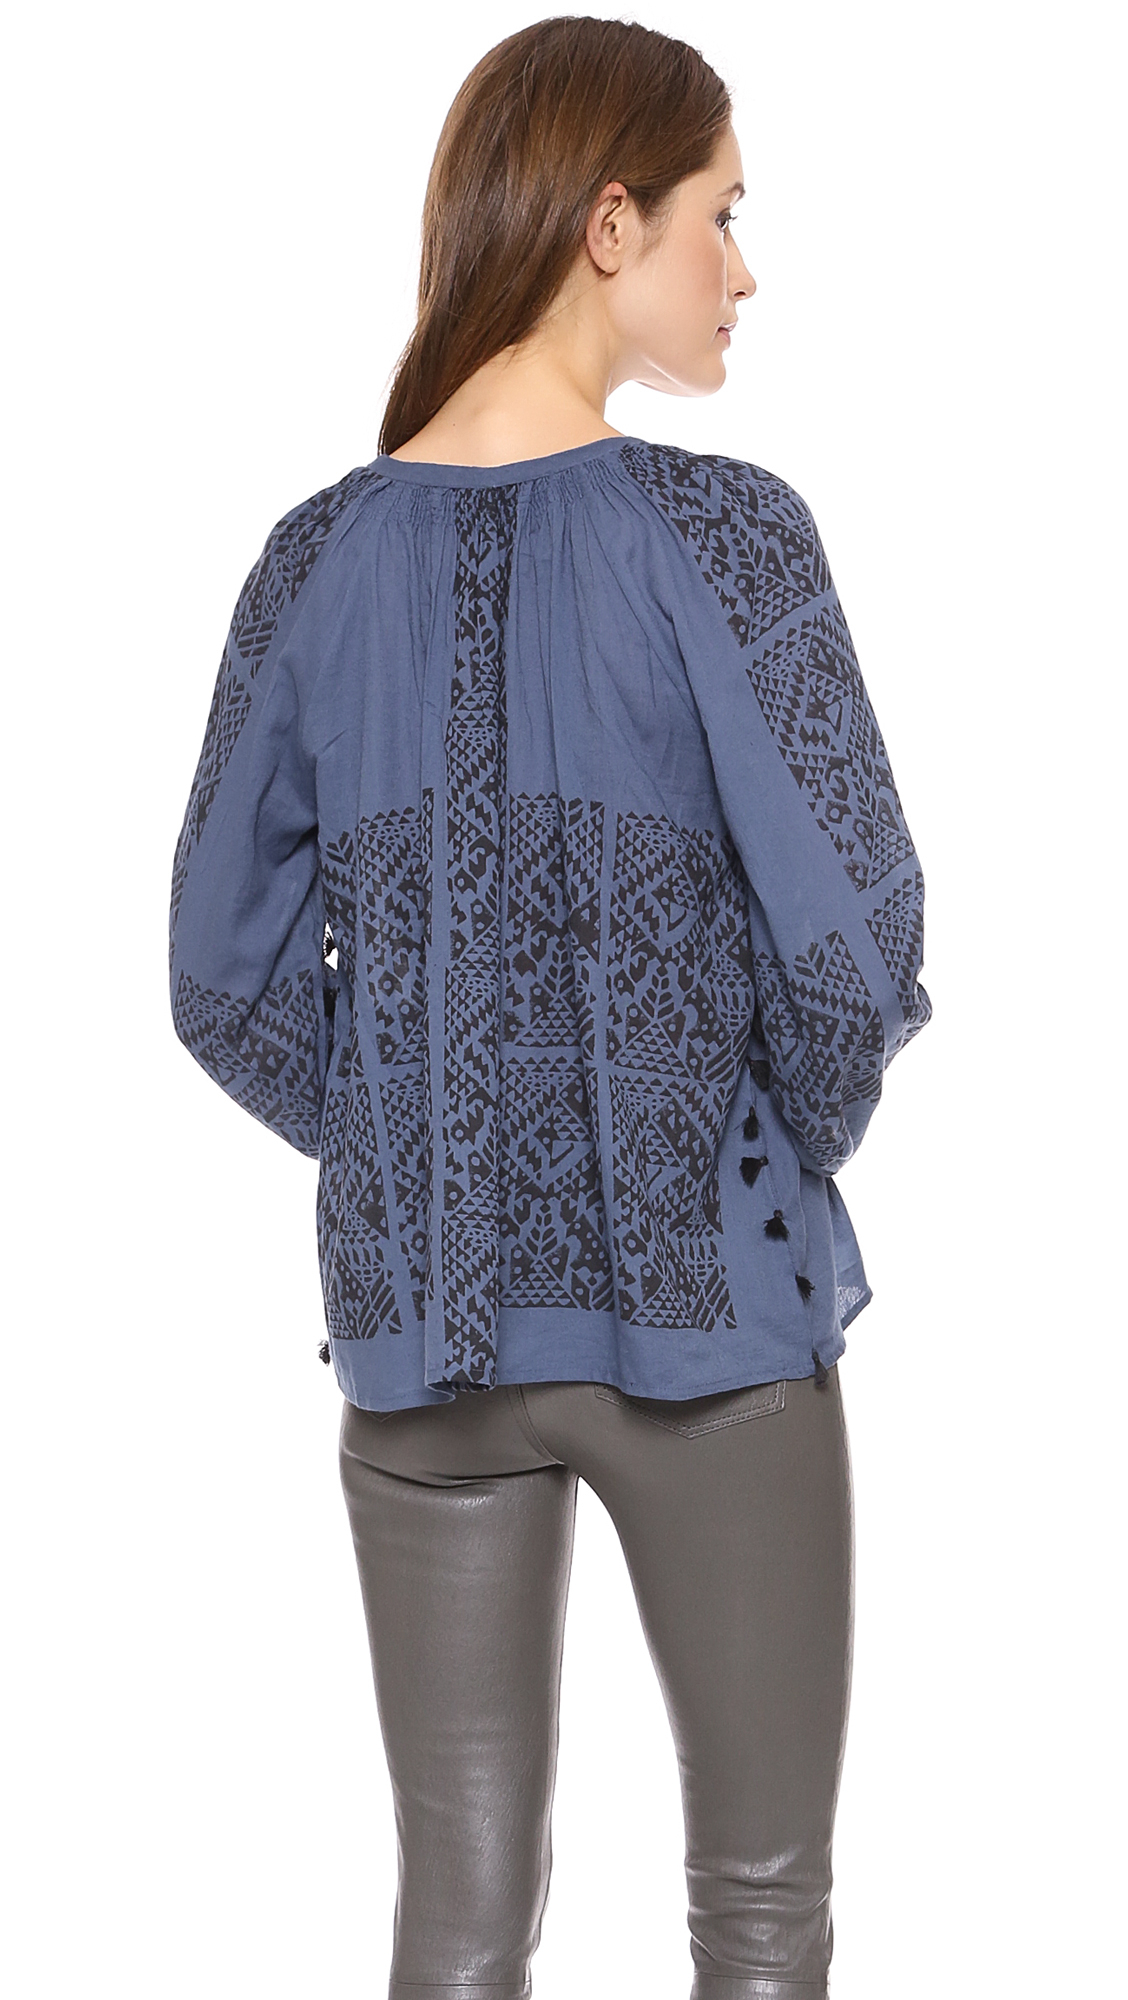 Lyst - Antik Batik Baka Blouse - Blue In Blue